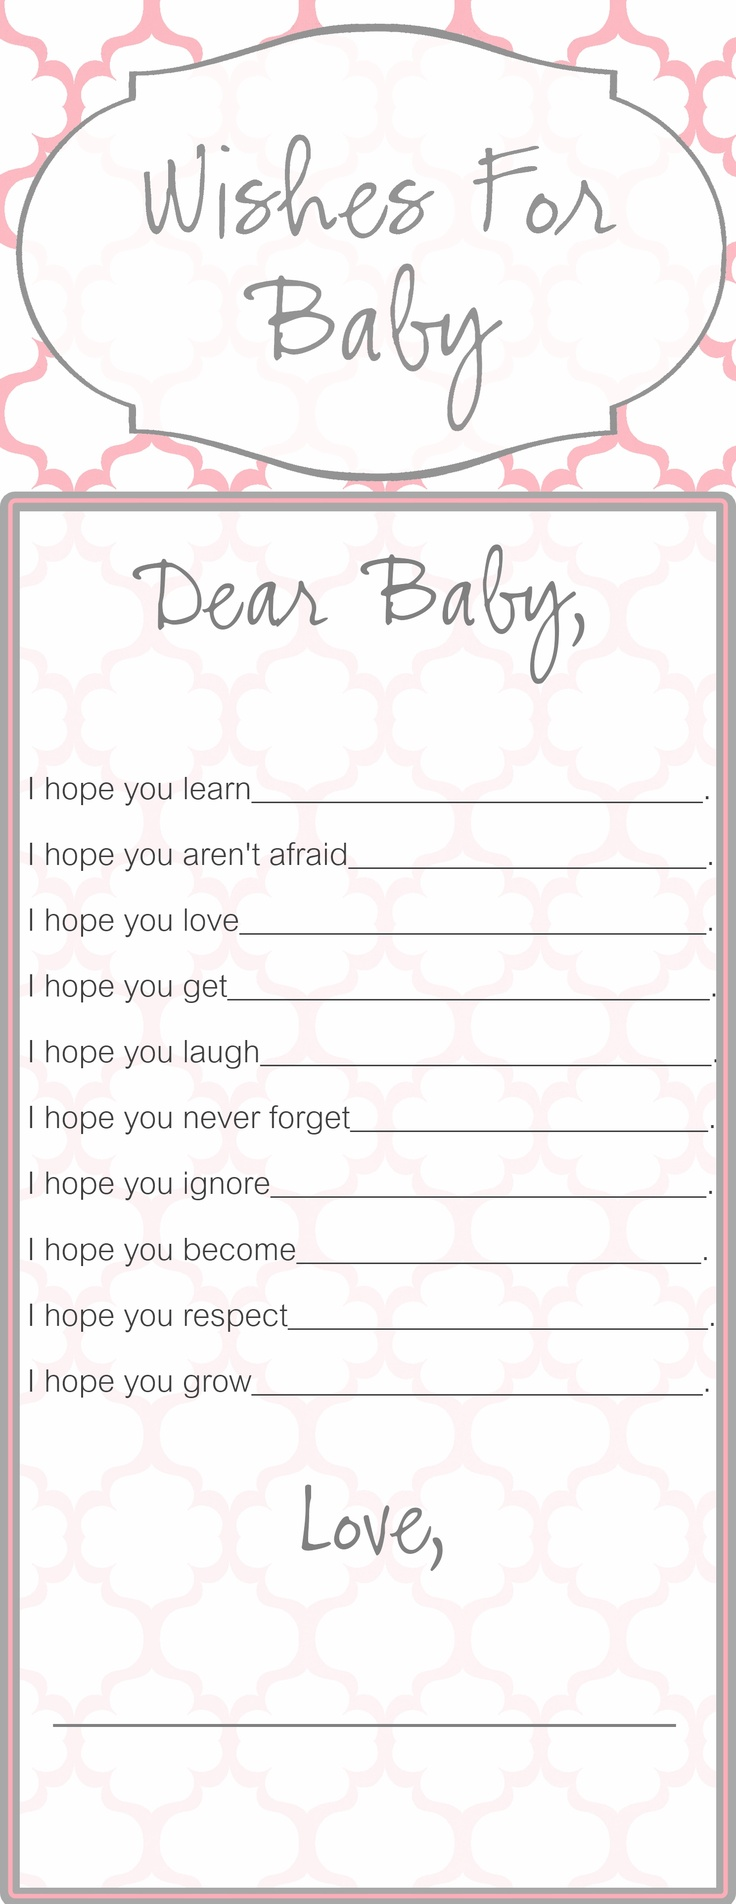 Wishes for baby template that i created for a baby shower for Wishes for baby printable template